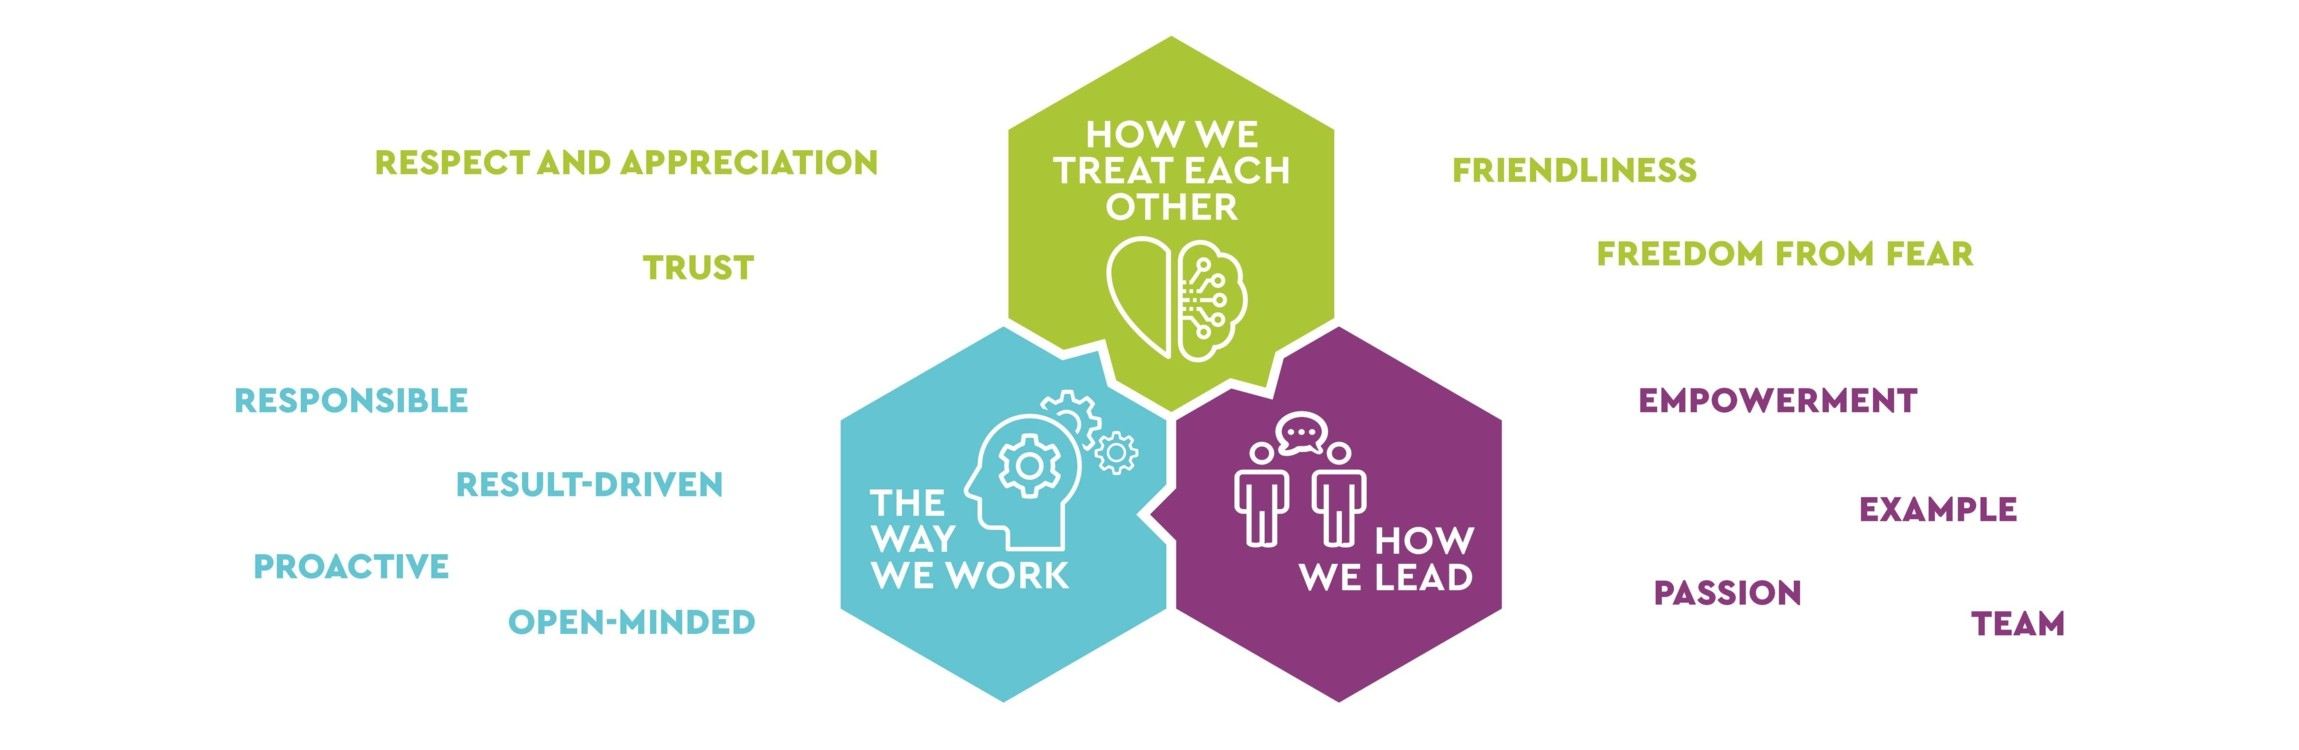 Overview of our values-based corporate culture | TGW